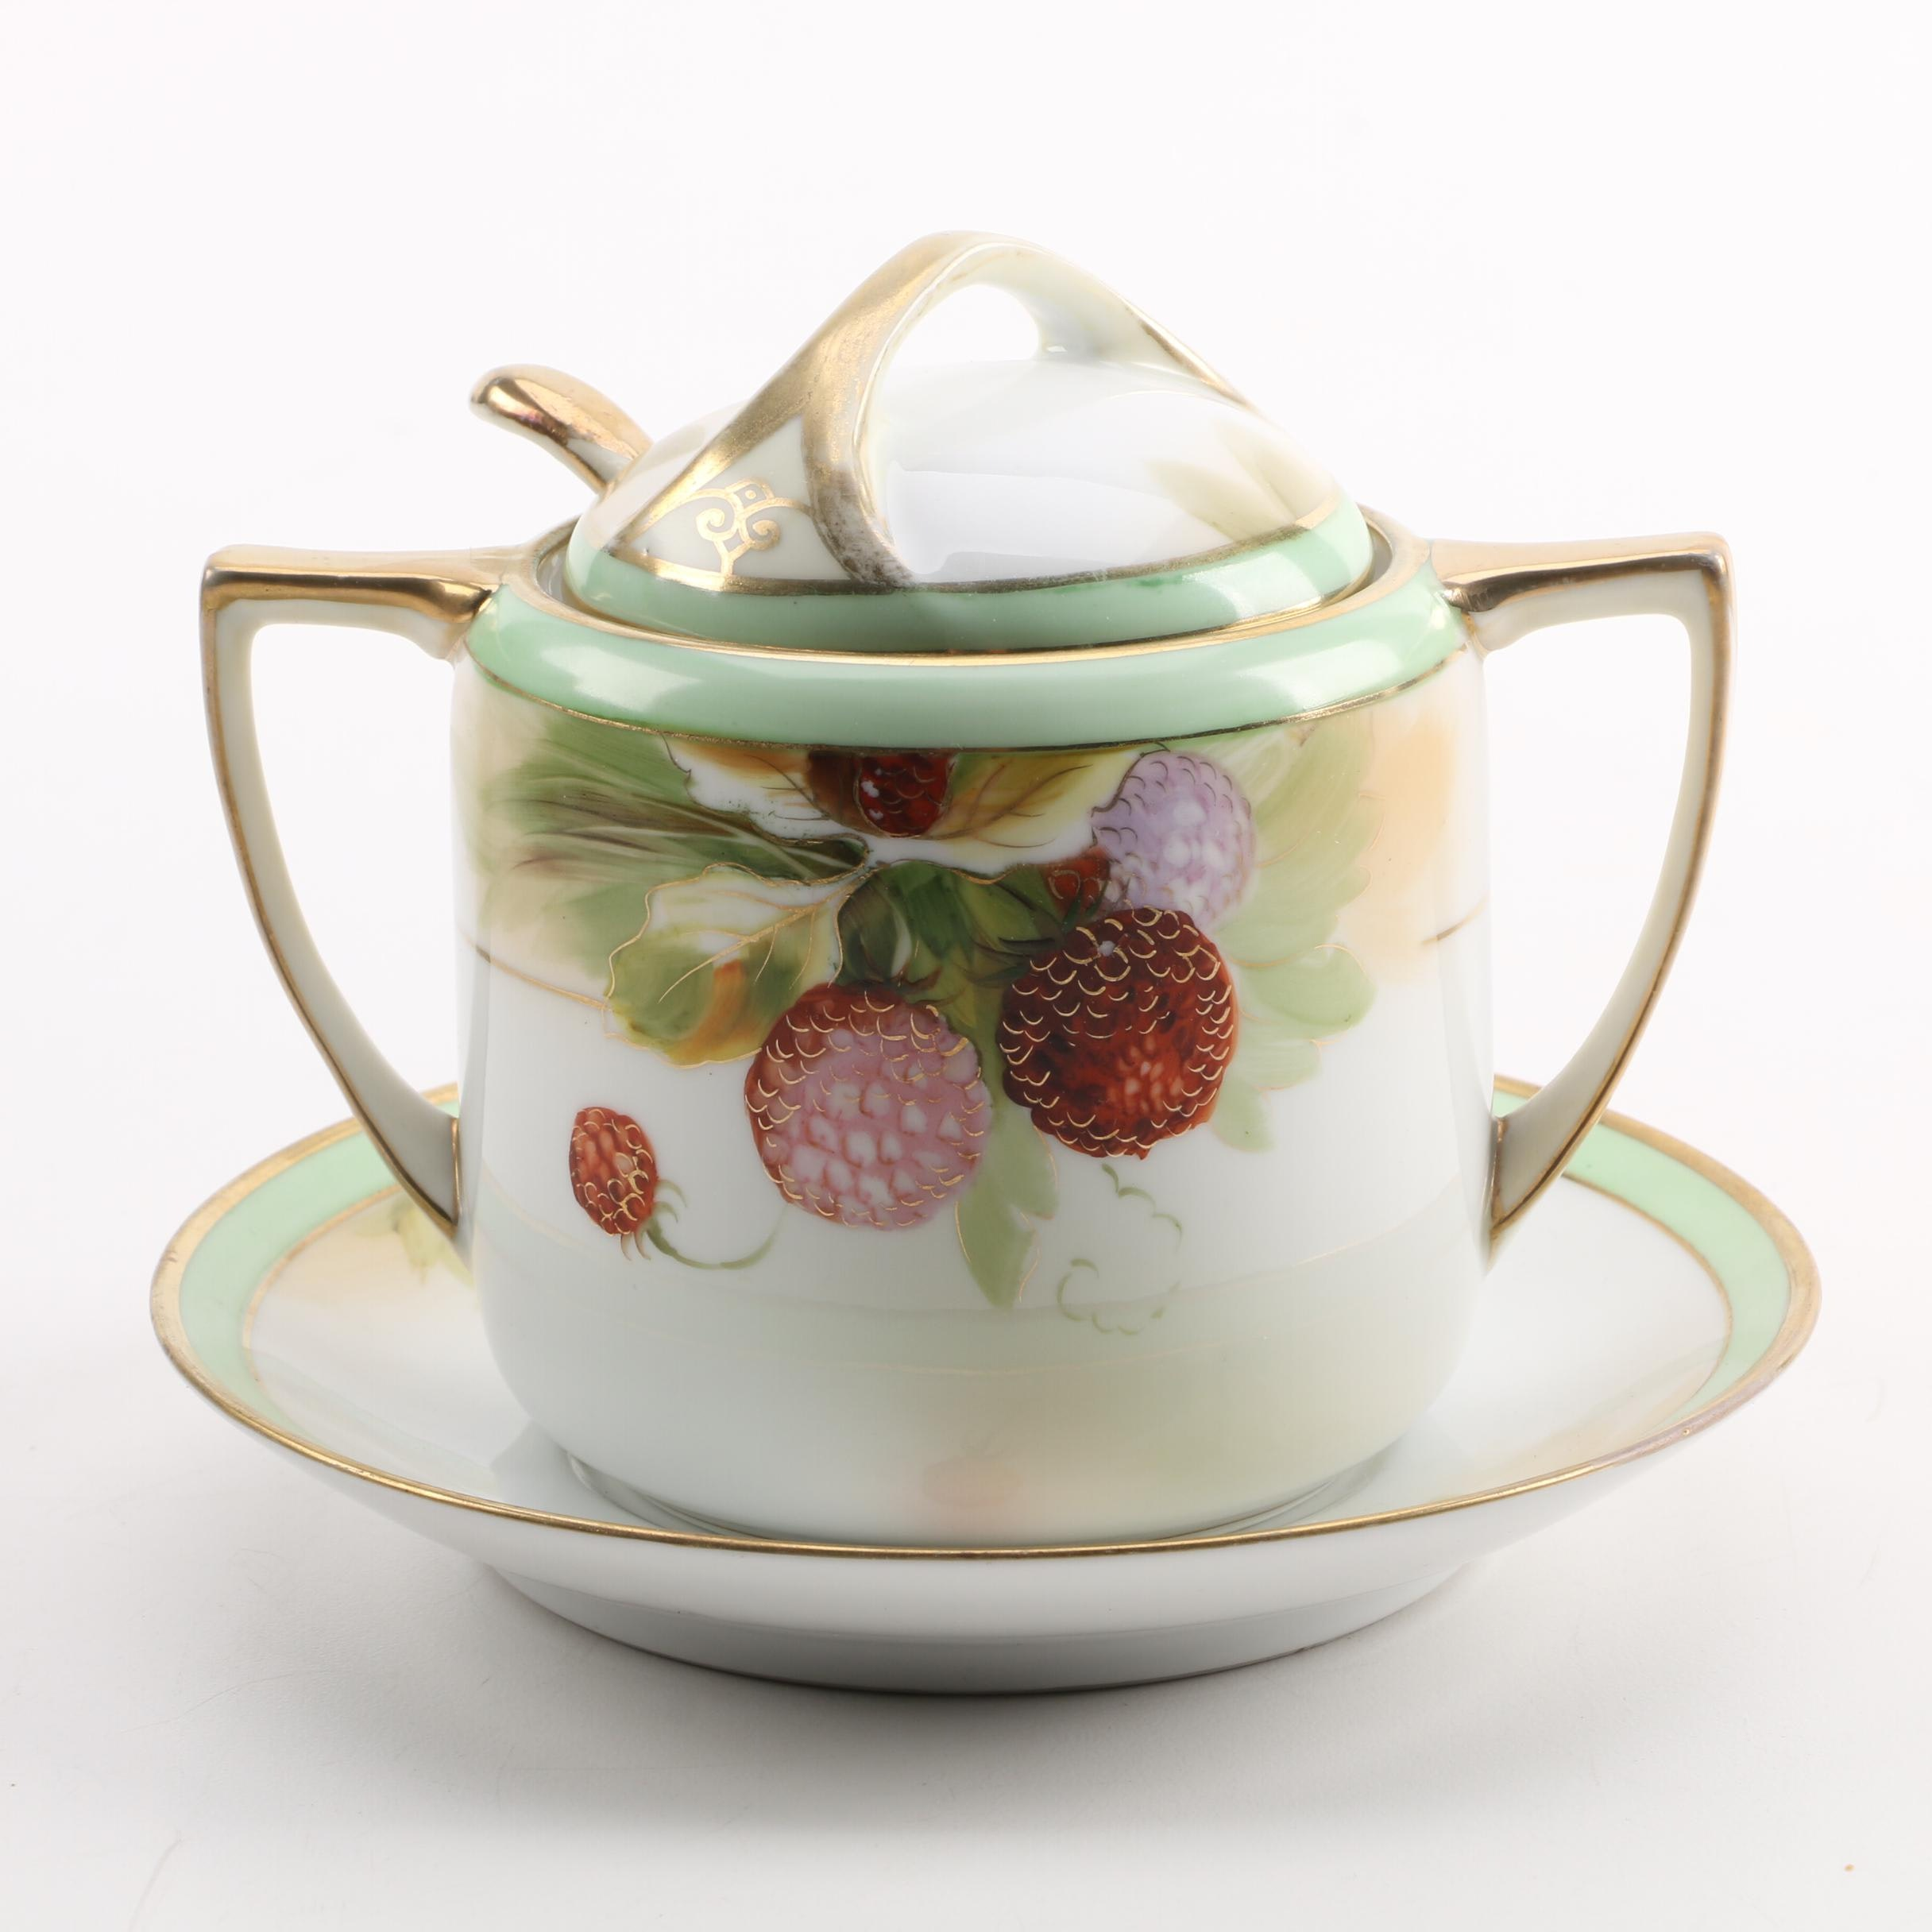 Nippon Raspberry Sauce Tureen with Matching Ladle and Underplate